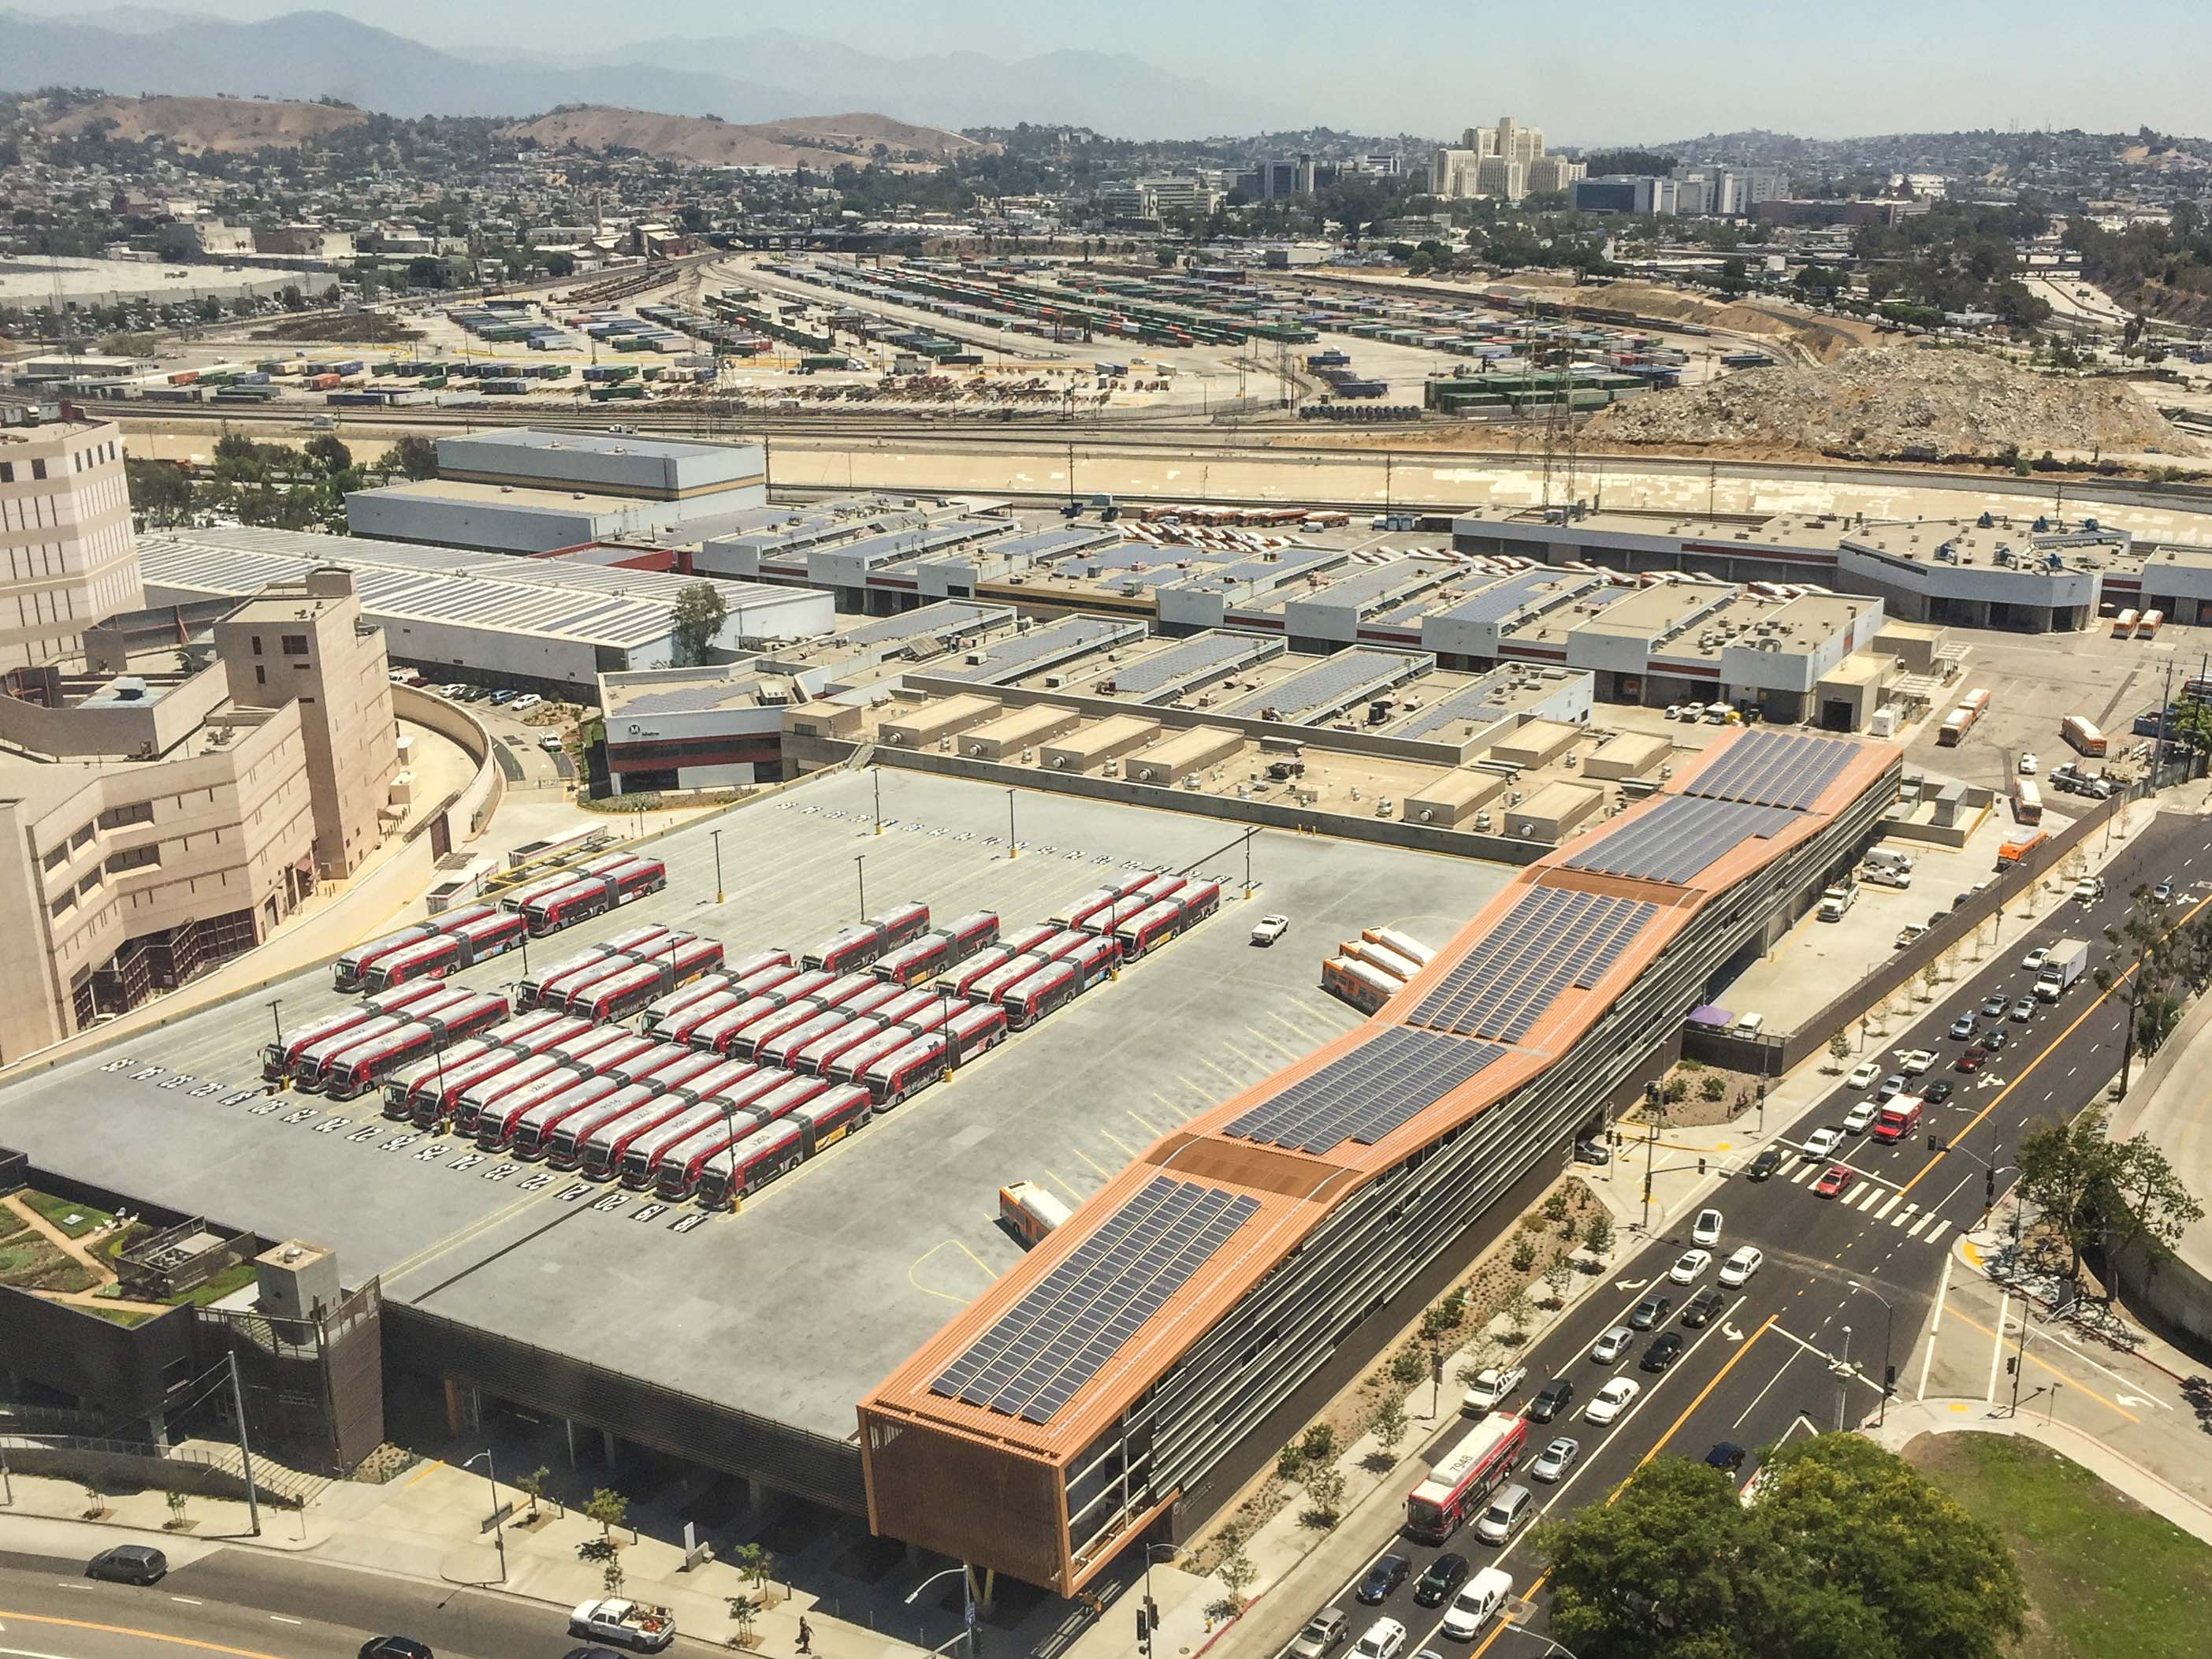 Metro also has solar panels on its own facilities -- including Division 13 in DTLA. Photo: Metro.